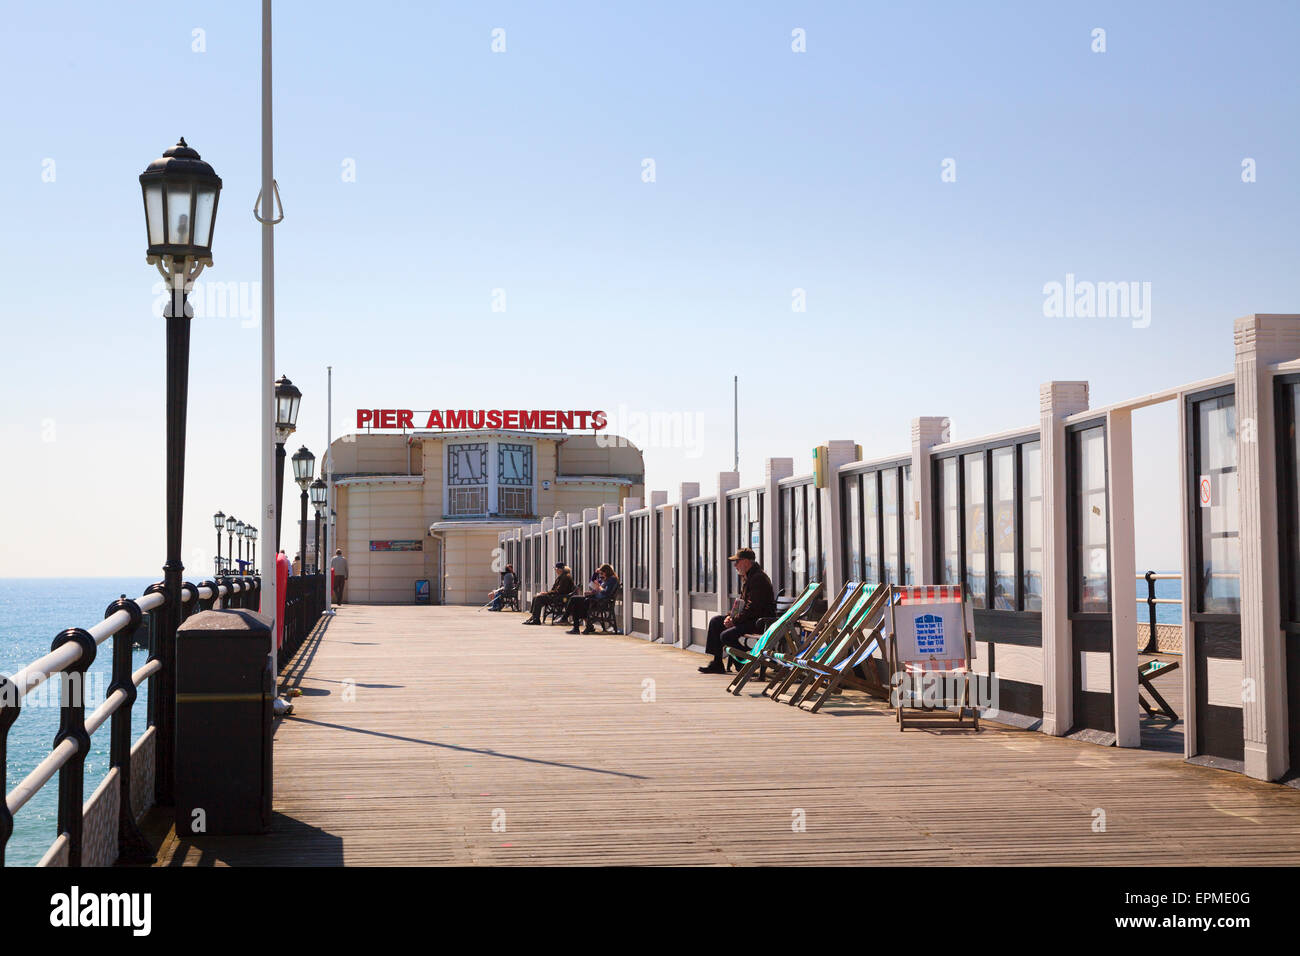 People sitting on Worthing Pier behind glass windbreaks and Pier Amusements sign - Stock Image